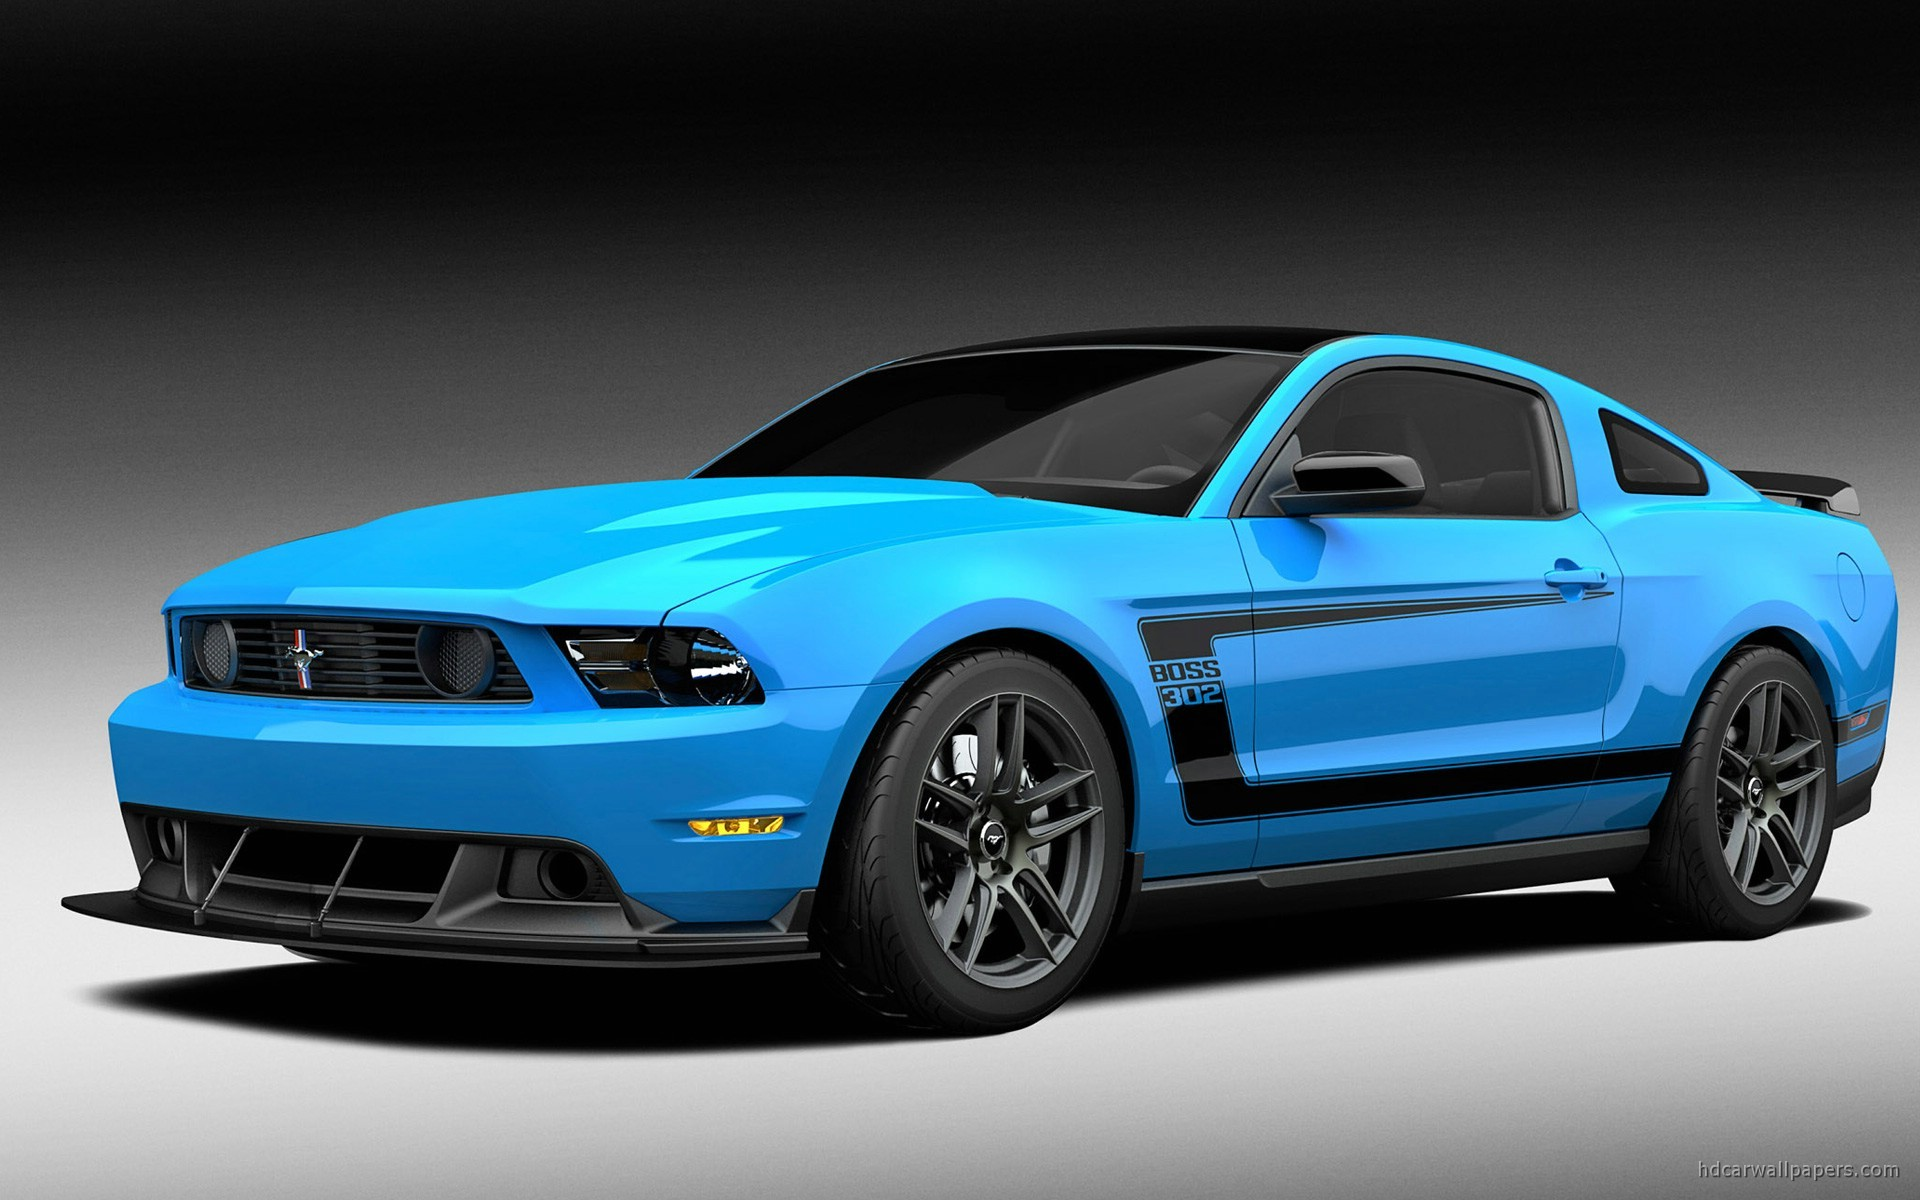 Ford Mustang pictures